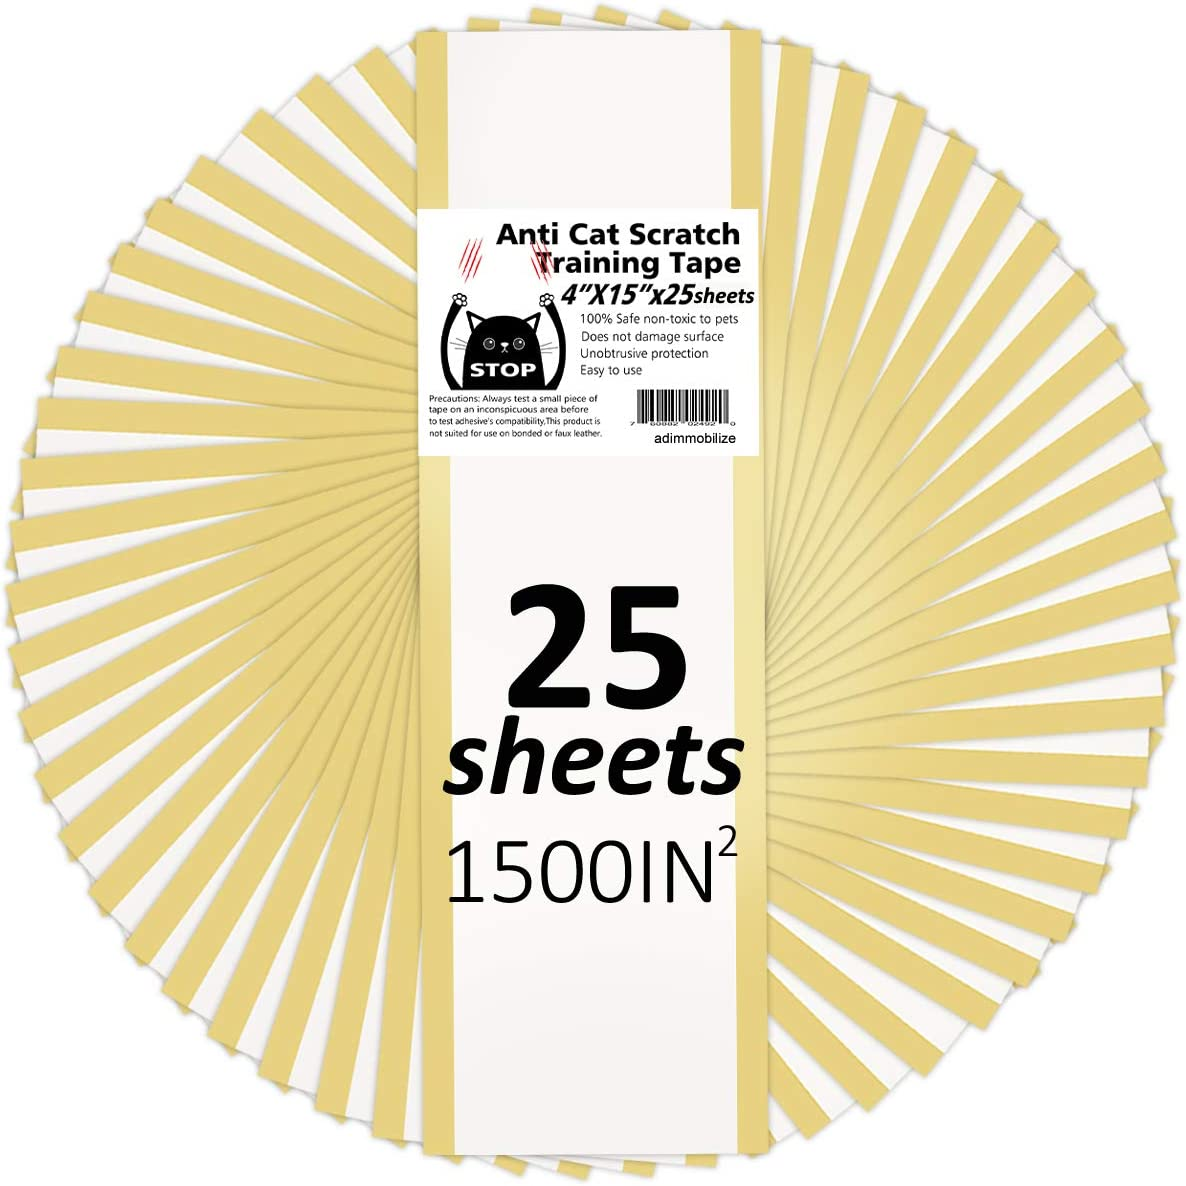 adimmobilize Anti Cat Scratch Tape 25 Sheets x 4 x 15 Inches, Cat Scratch Deterrent Training Tape for Couch, Furniture, Door, 100% Transparent Clear, Removable, Residue-Free, Non-Toxic